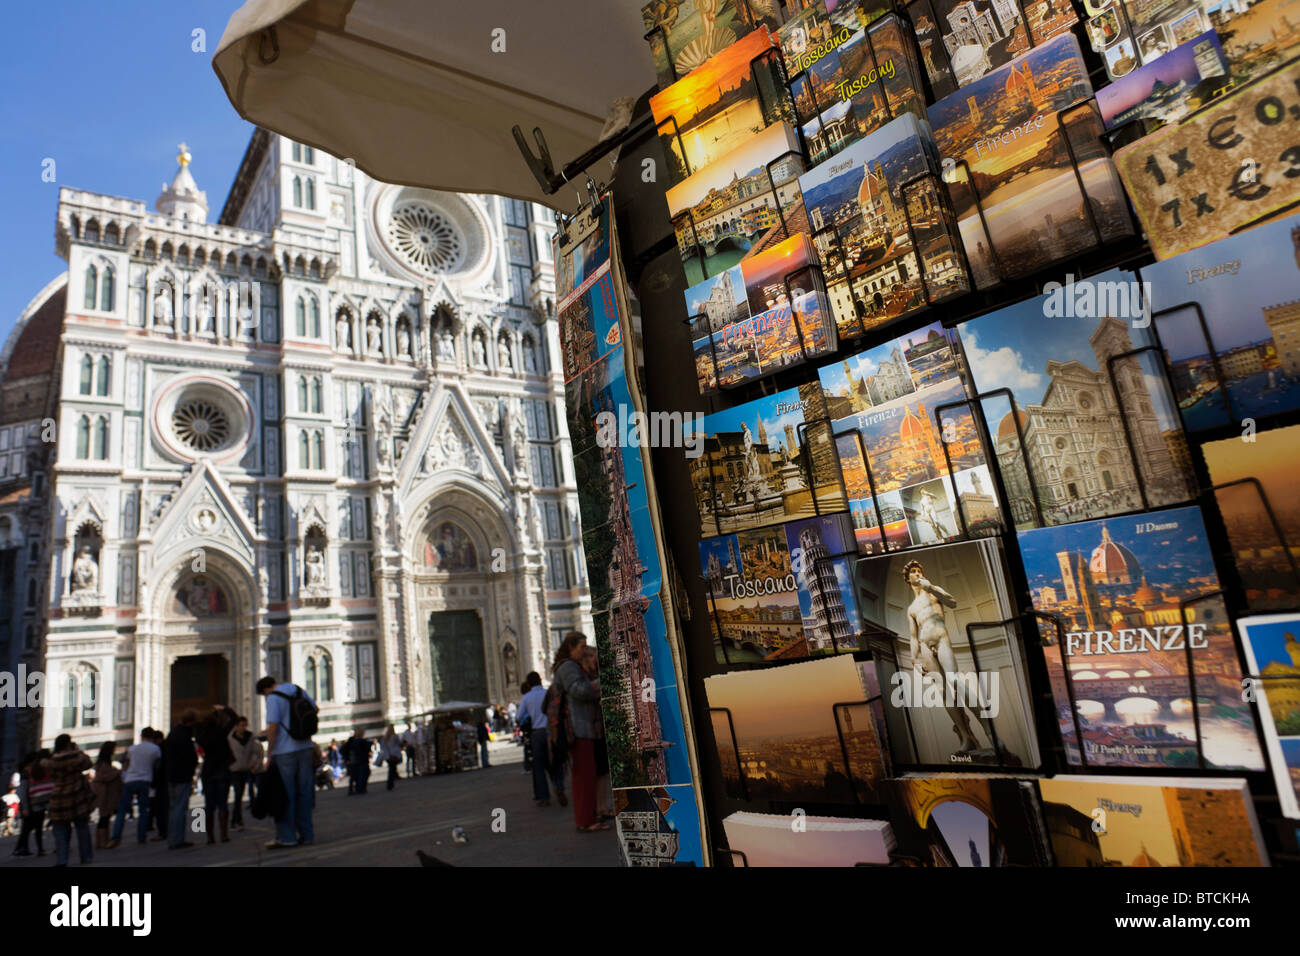 Postcards rack in Piazza Santa Giovanni beneath Florence's Santa Maria del Fiore (Duomo) Cathedral. - Stock Image